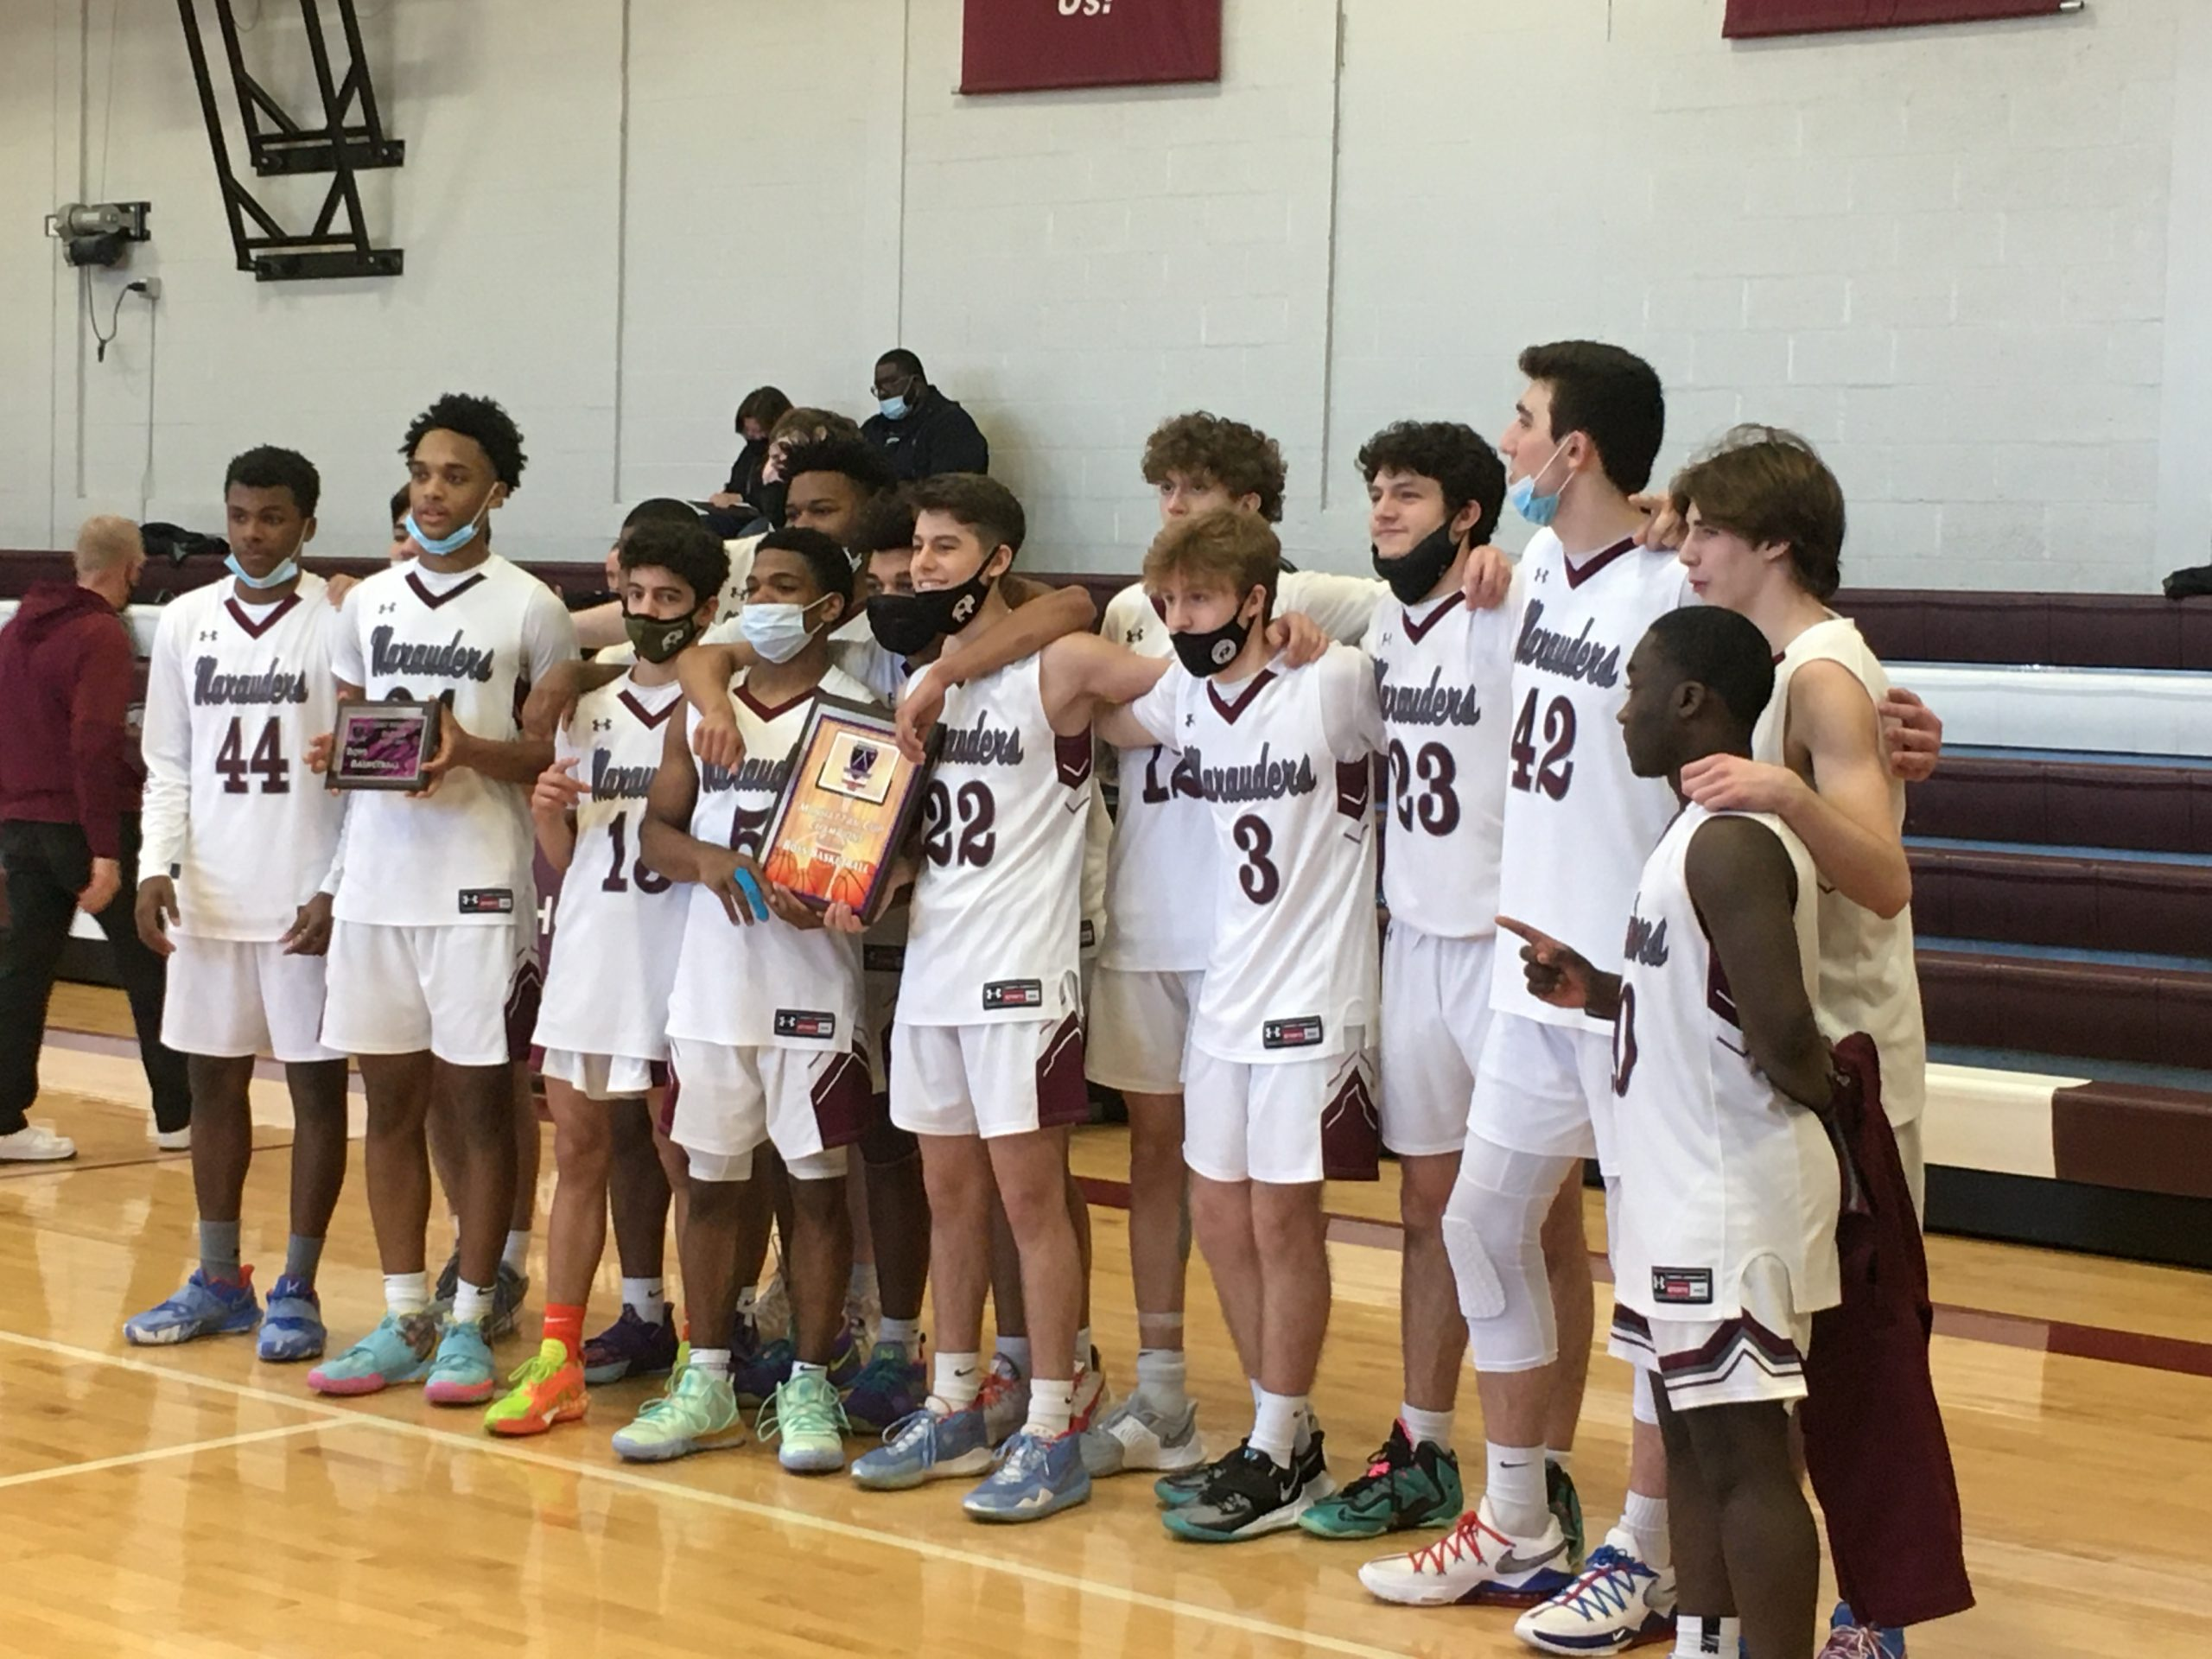 MARAUDERS MAUL TIGERS, WIN MANHATTAN CUP